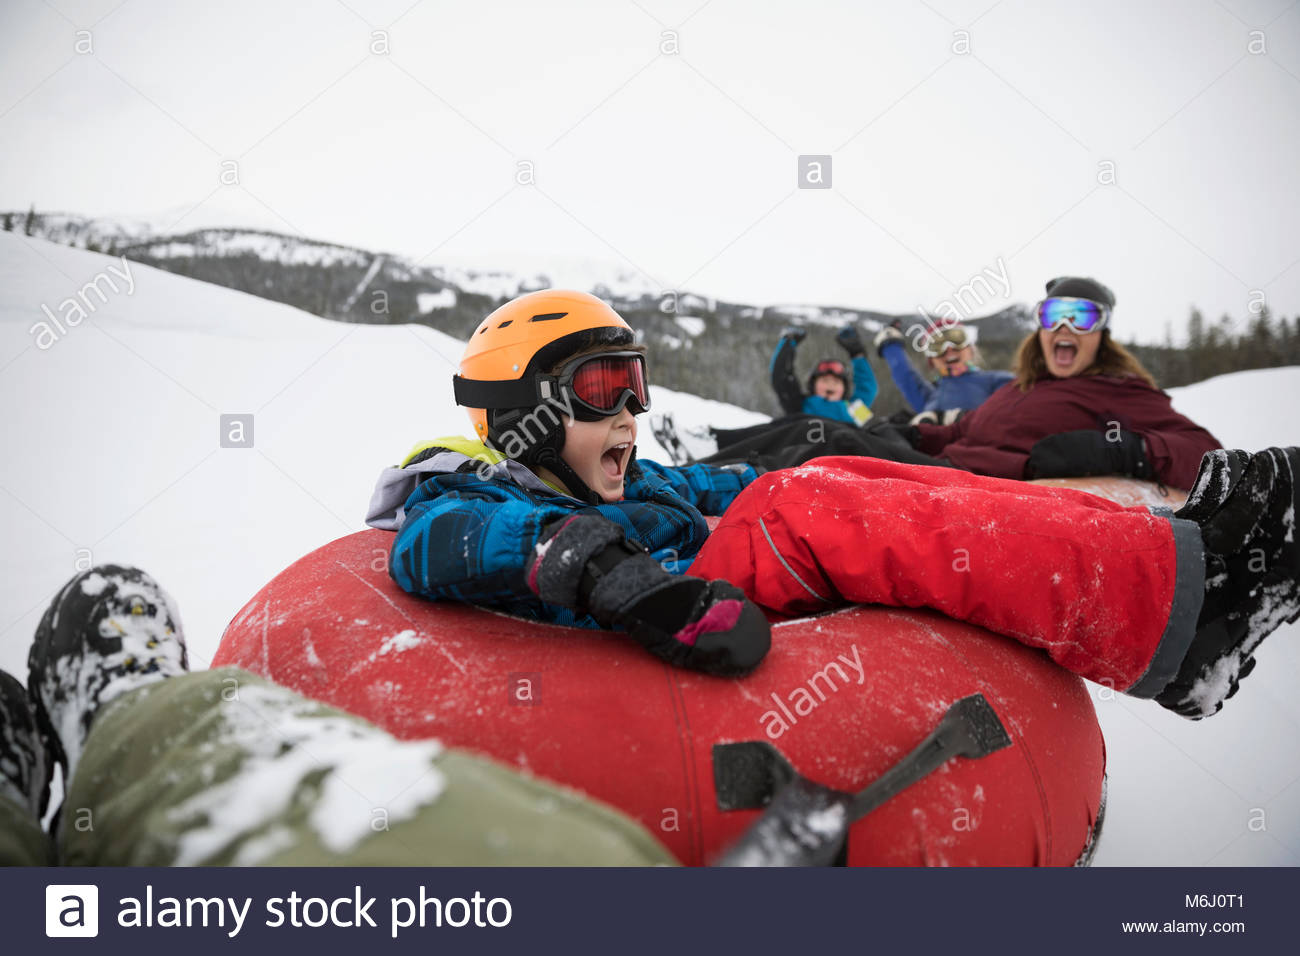 Playful boy inner tubing with family in snow at tube park - Stock Image